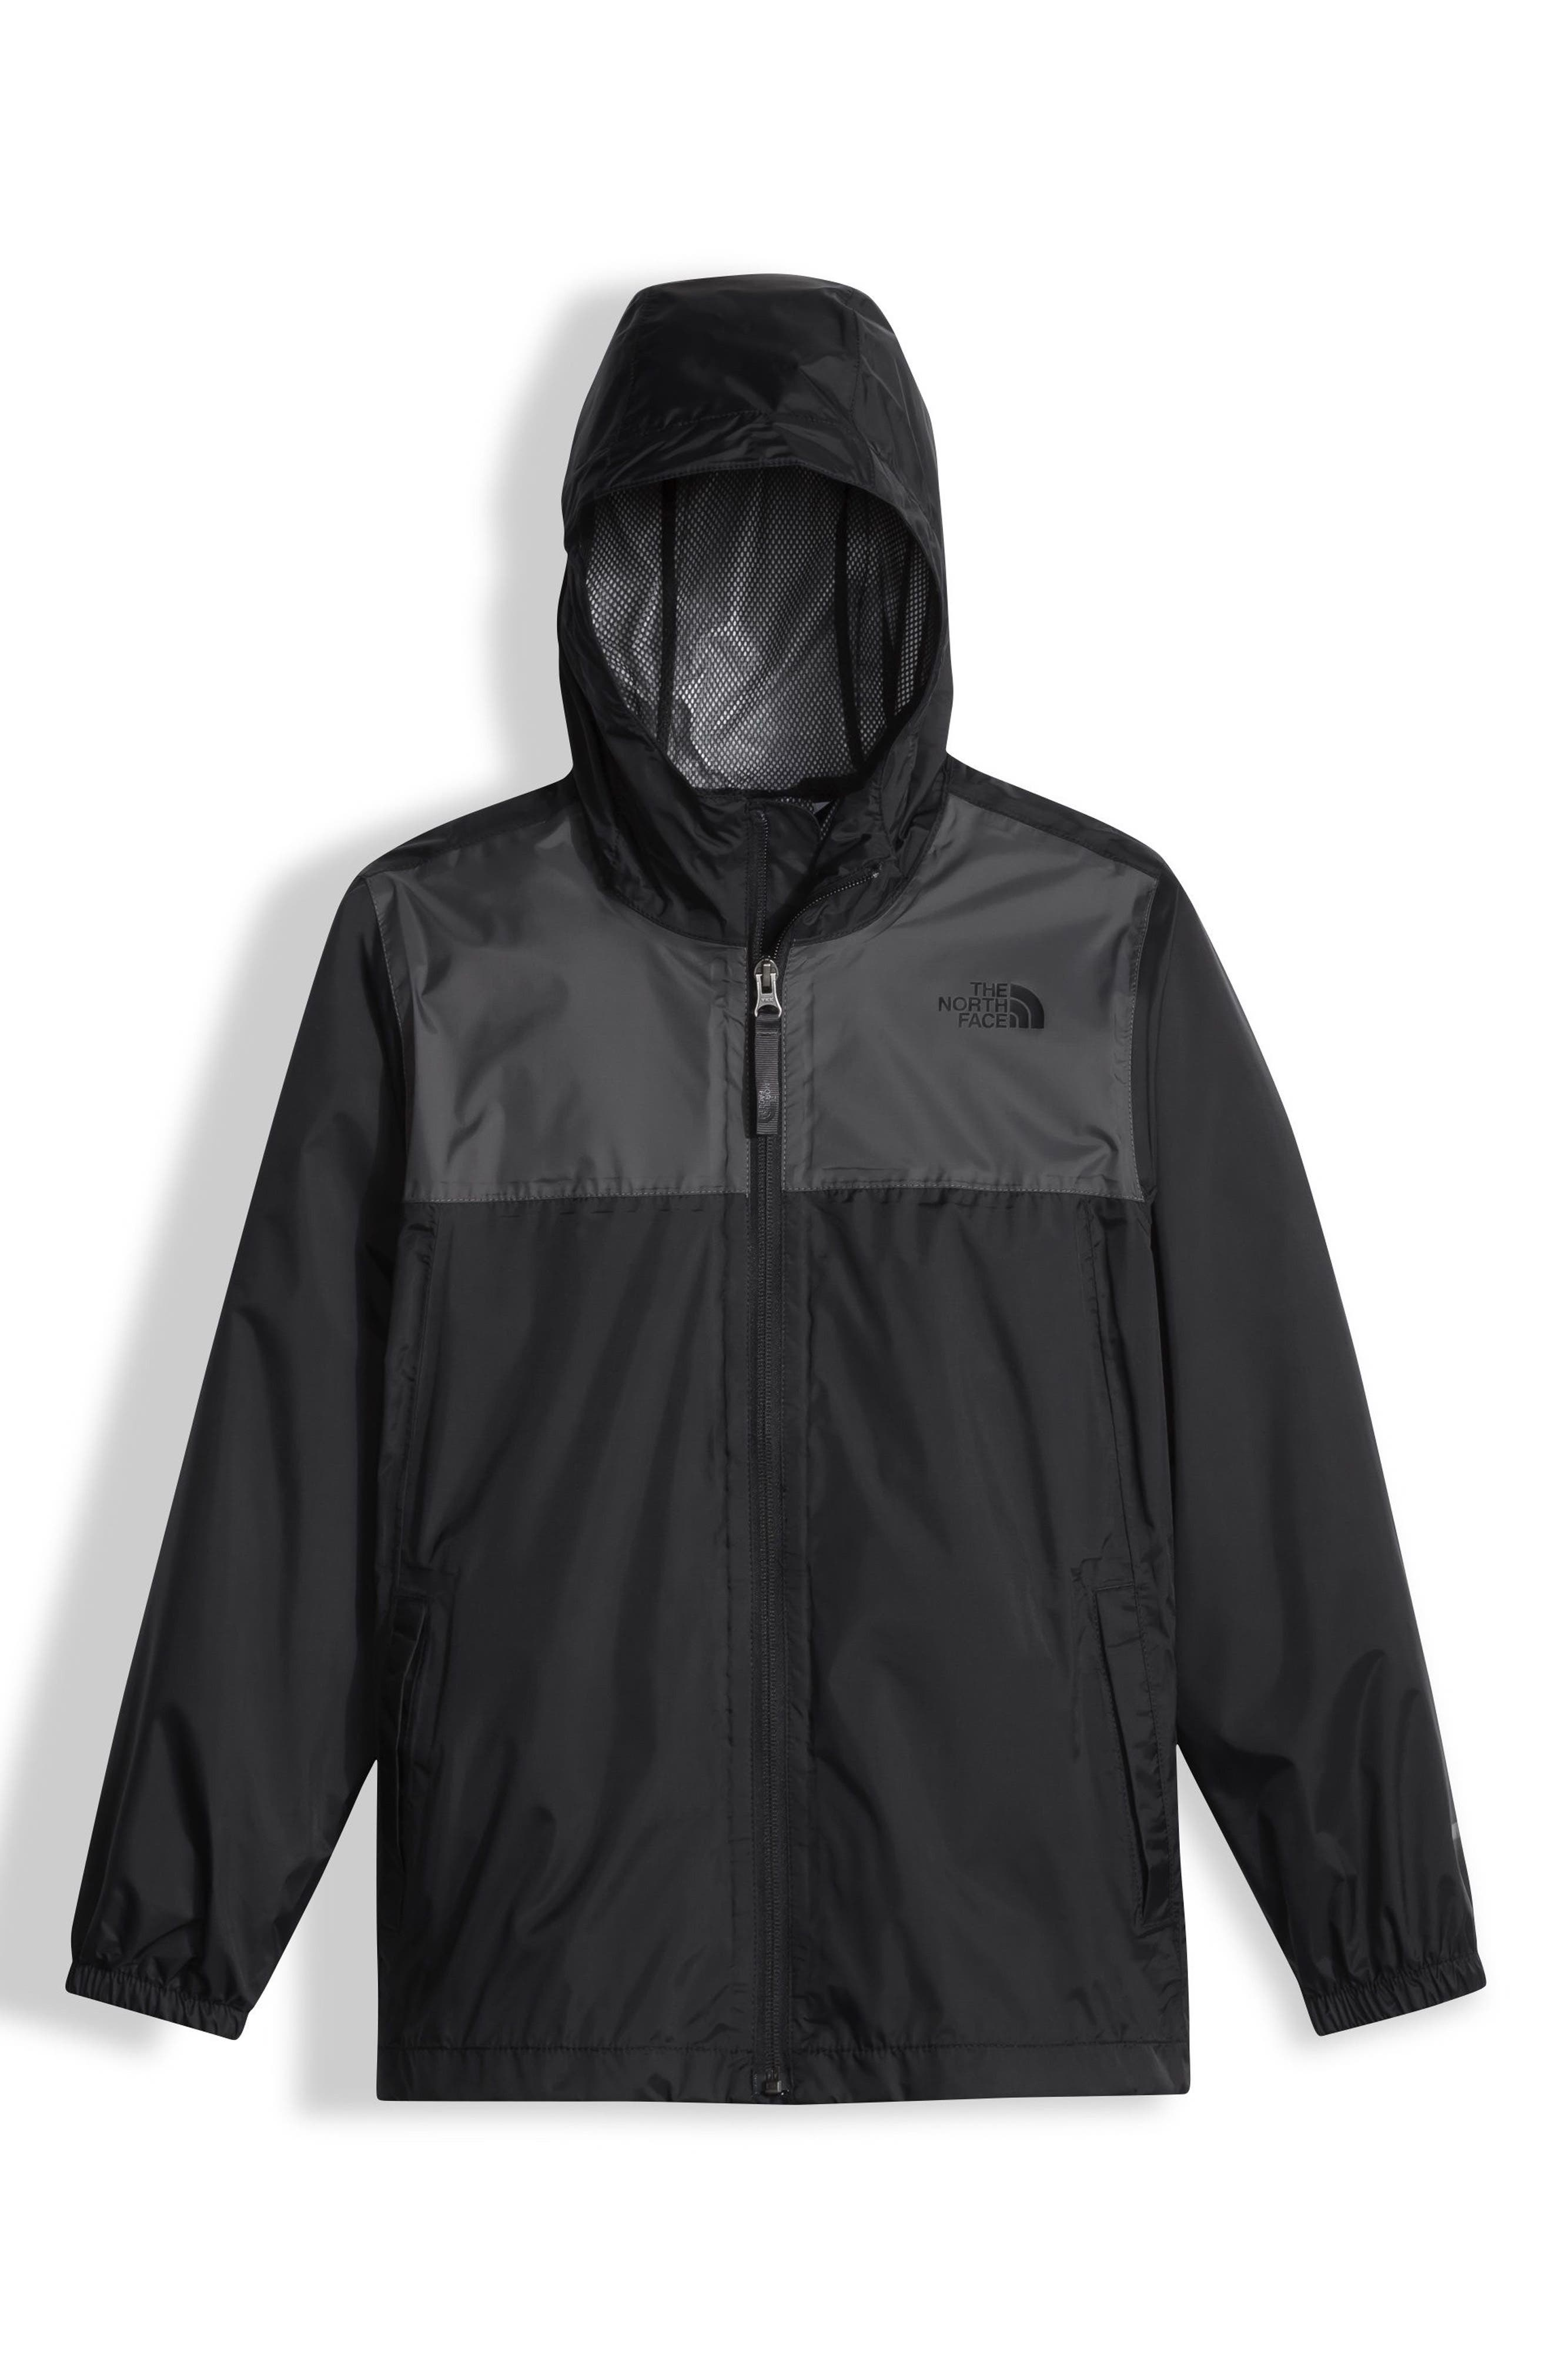 Zipline Hooded Rain Jacket,                             Main thumbnail 1, color,                             001